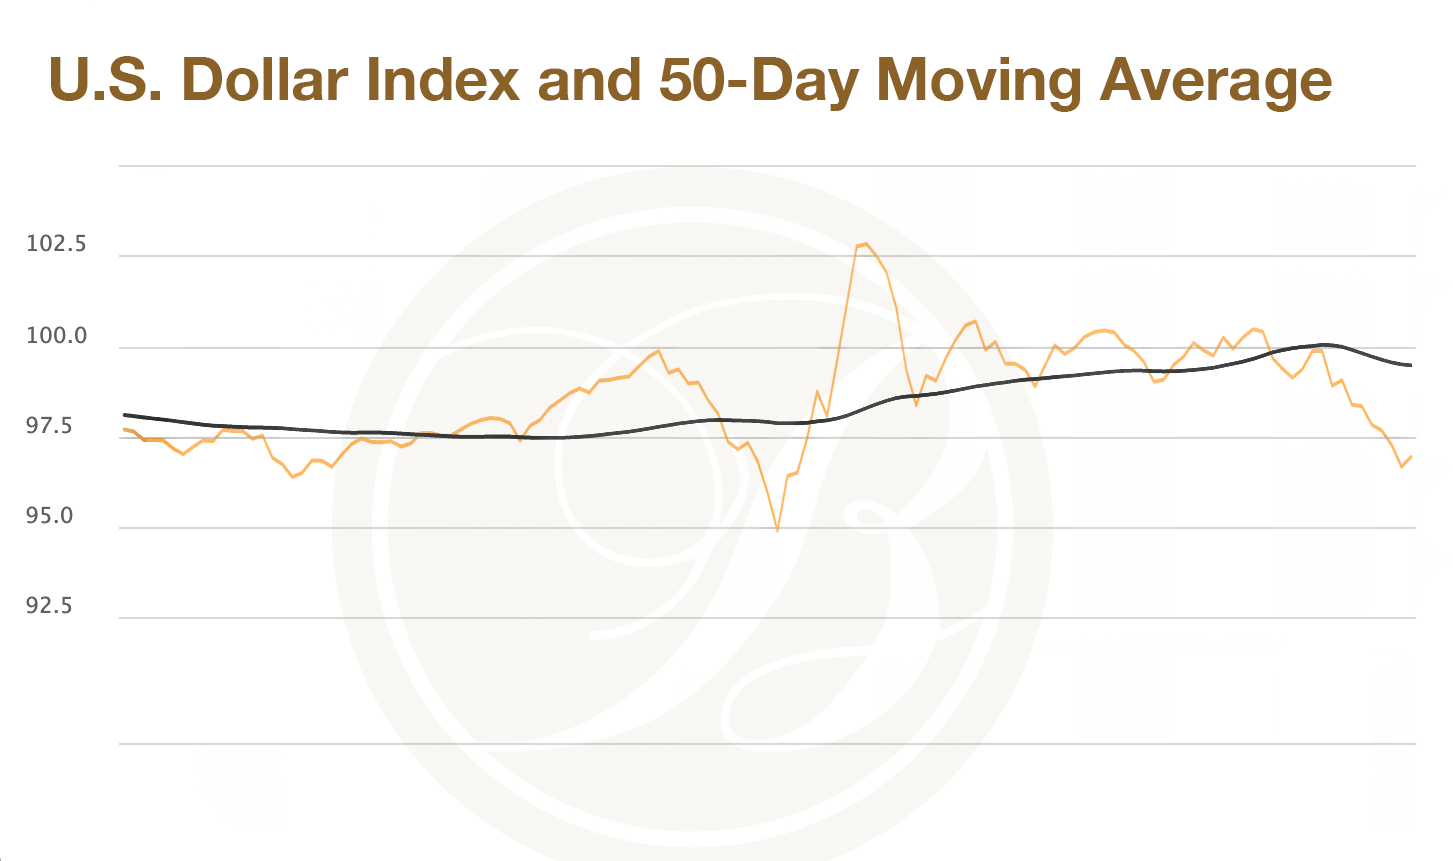 U.S. Dollar Index and 50-Day Moving Average